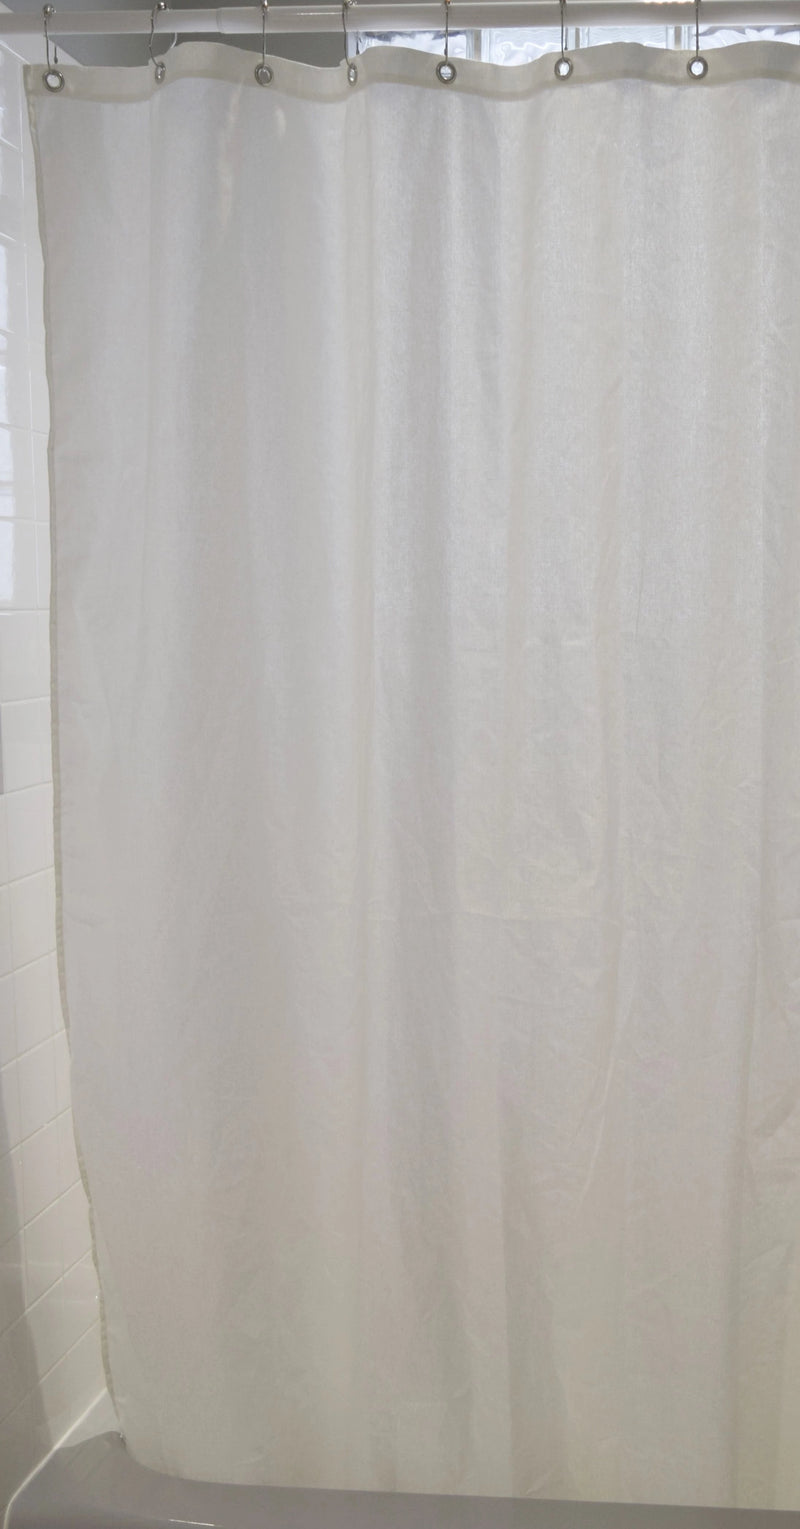 Cotton Shower Curtain – White or Natural, Bath, Tub + Stall Sizes – Made in USA